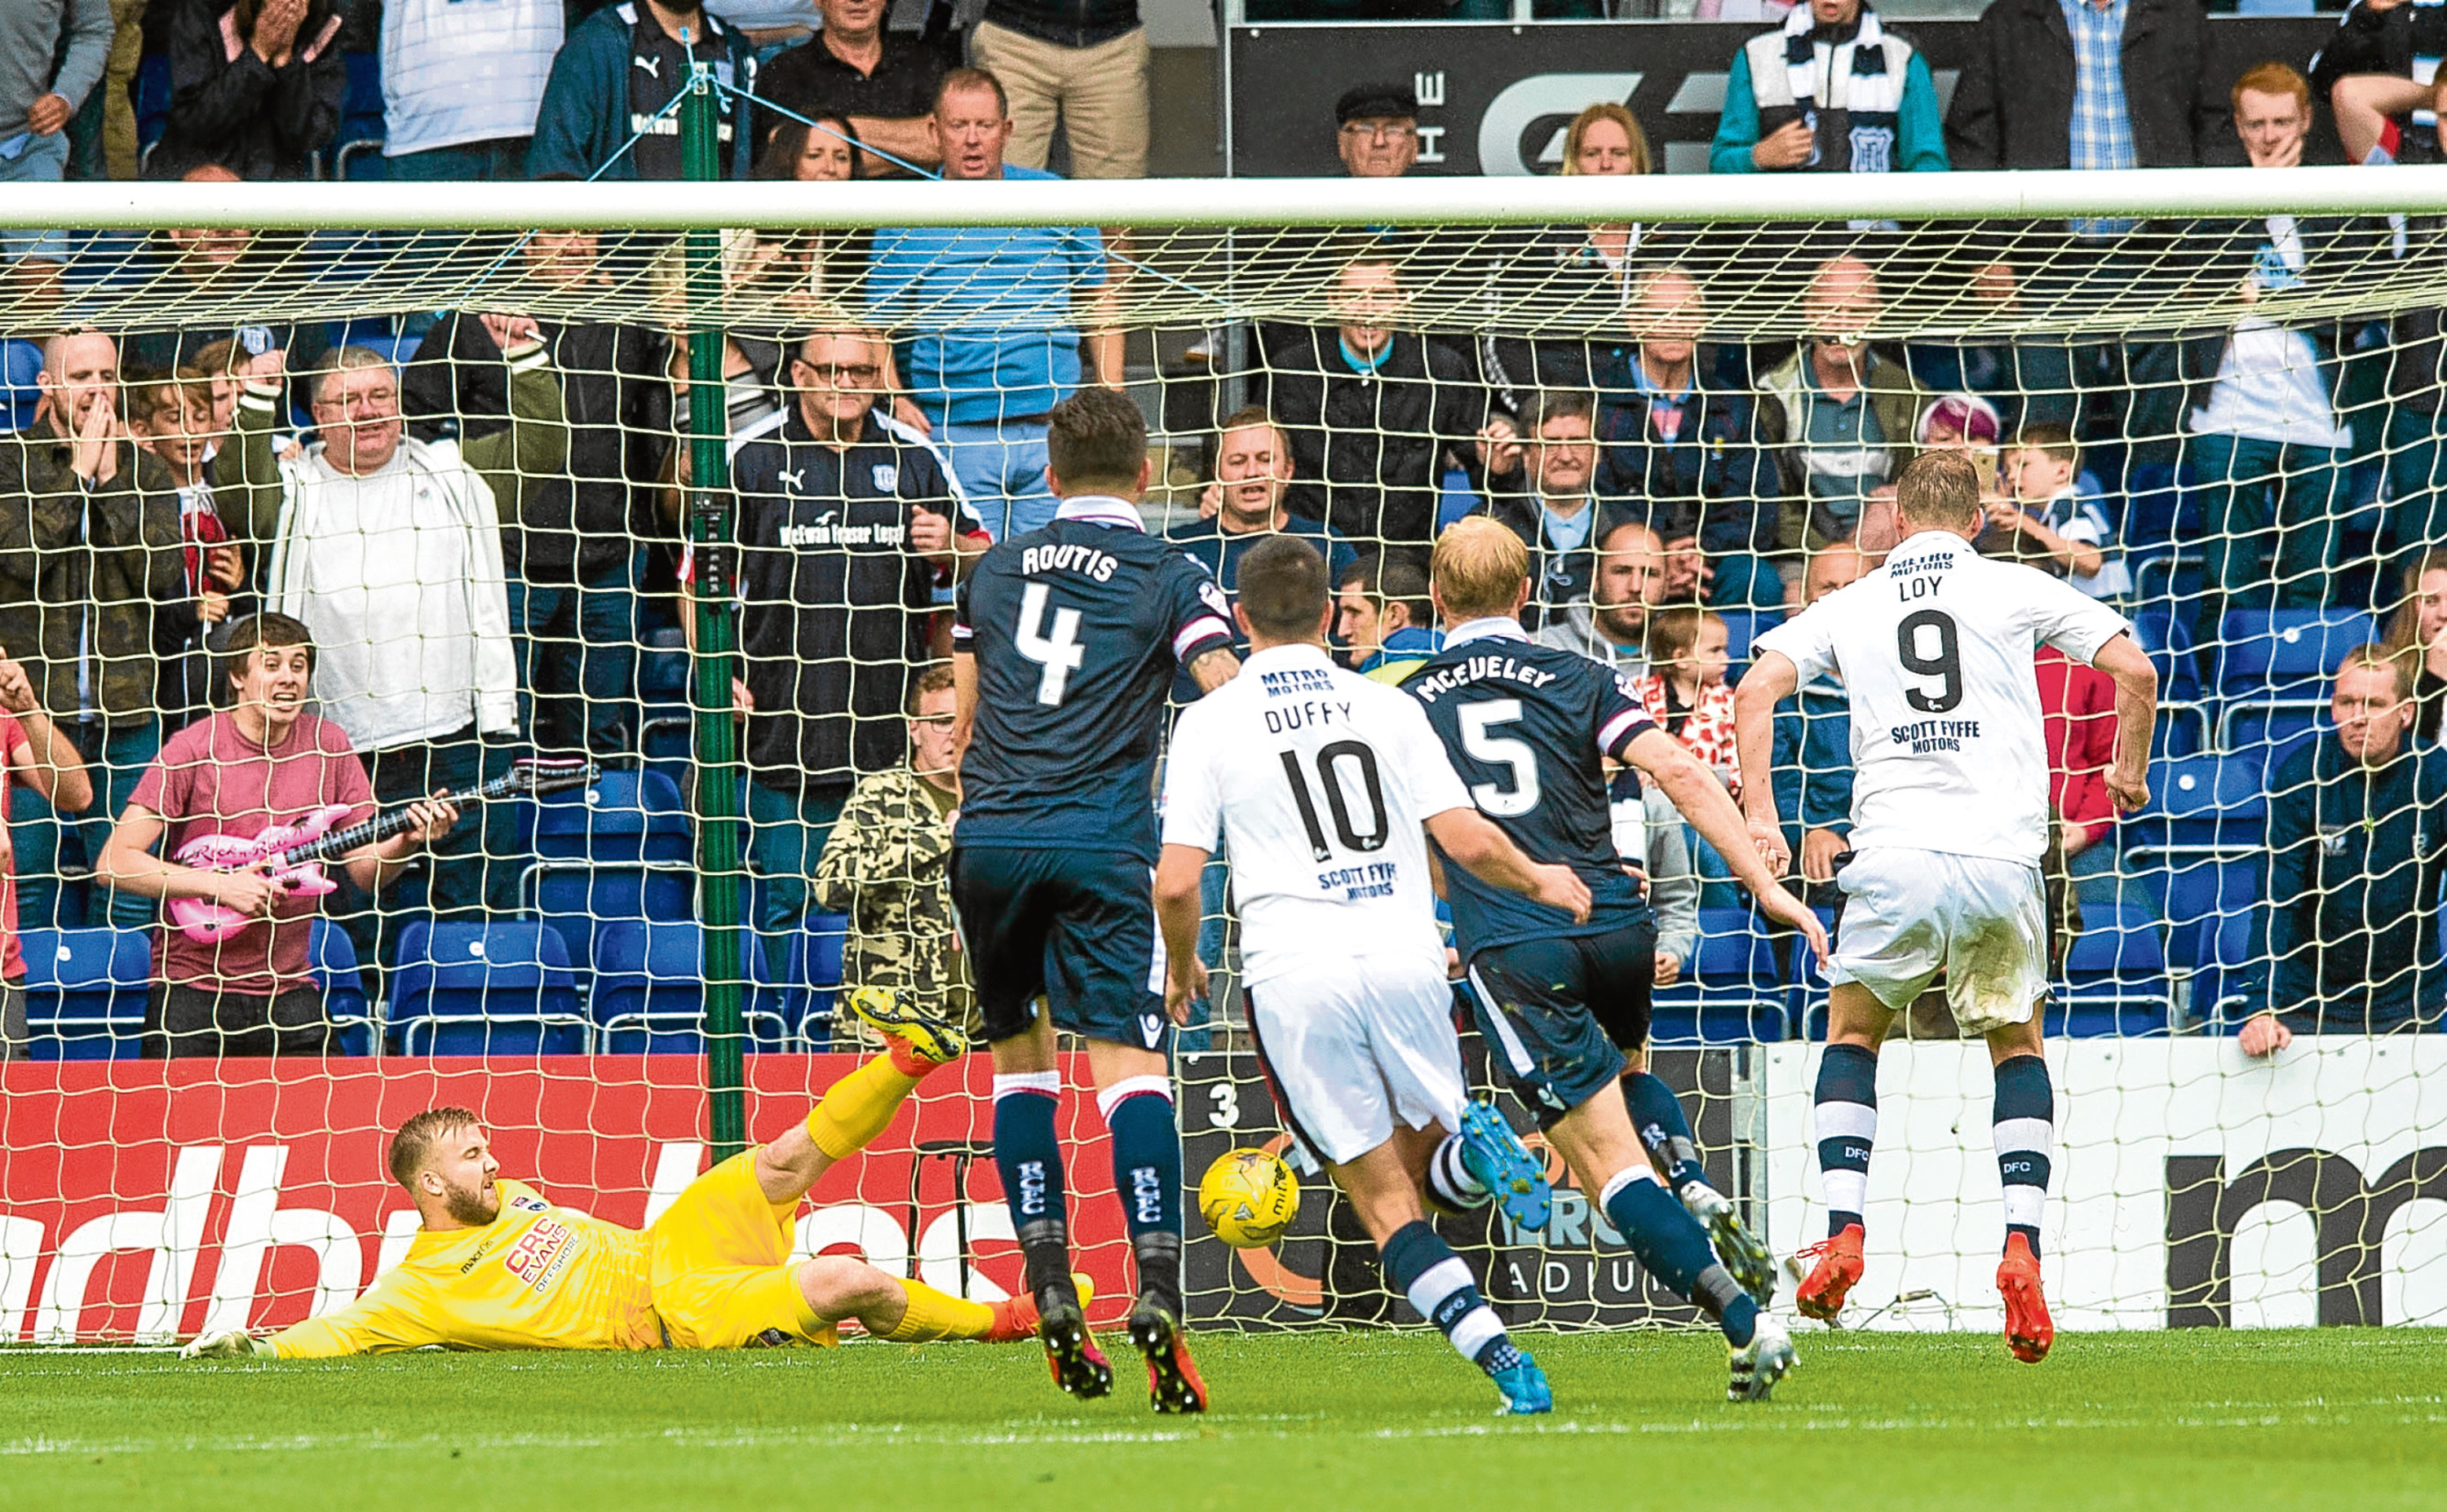 Rory Loy (No 9) nets his second goal in Saturday's 3-1 win at Ross County from the penalty spot.